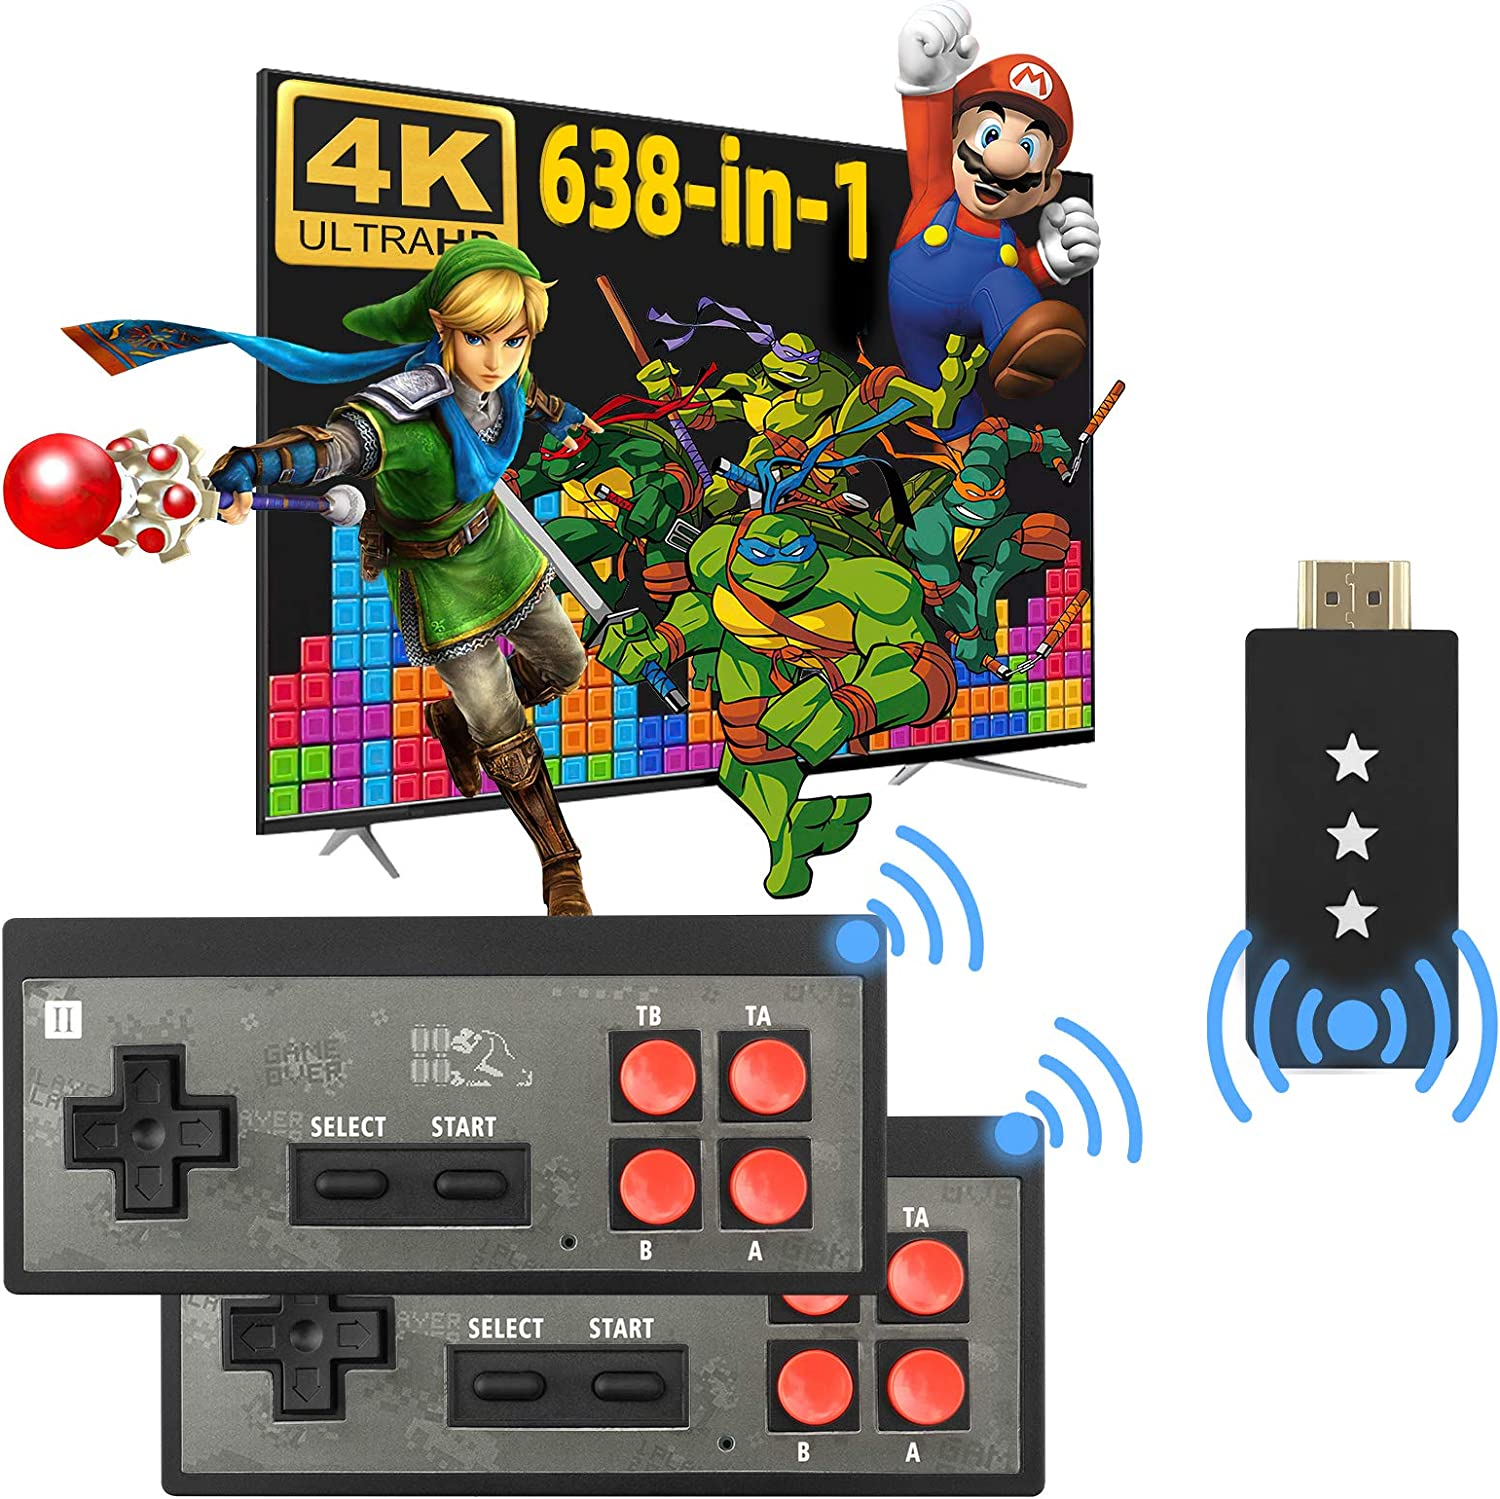 Fordim Retro Game Console, Wireless Controller, HDMI HD Output NES Game Console, Plug and Play Video Game Console, Built in 638 Classic Games, Mini Portable Host with TF Expansion, for Kids and Adult